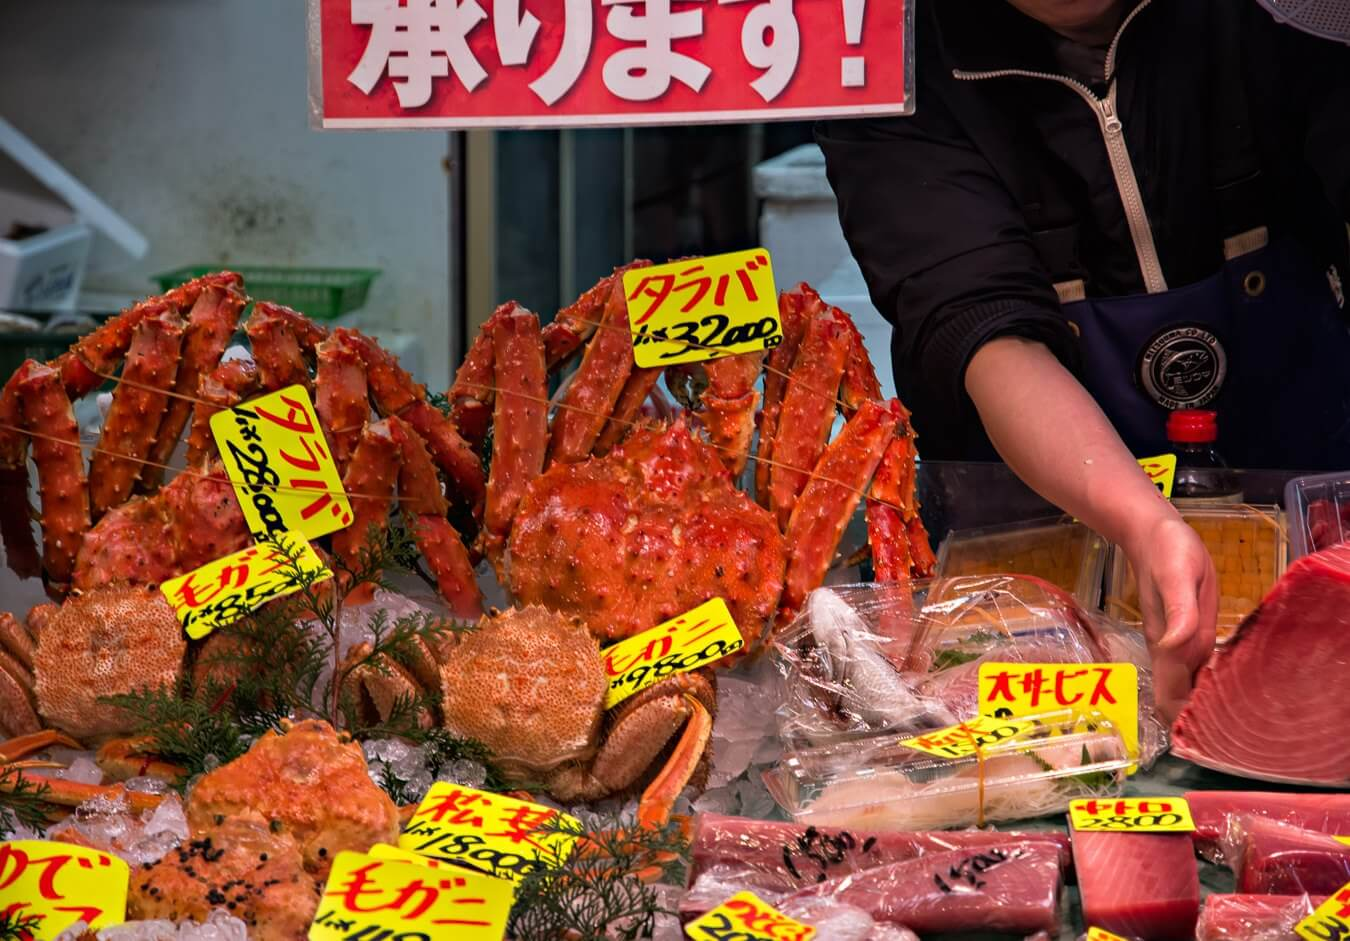 Fish Market, Tokyo, Japan - Photo by Zed Sindelar of CuriousZed Photography